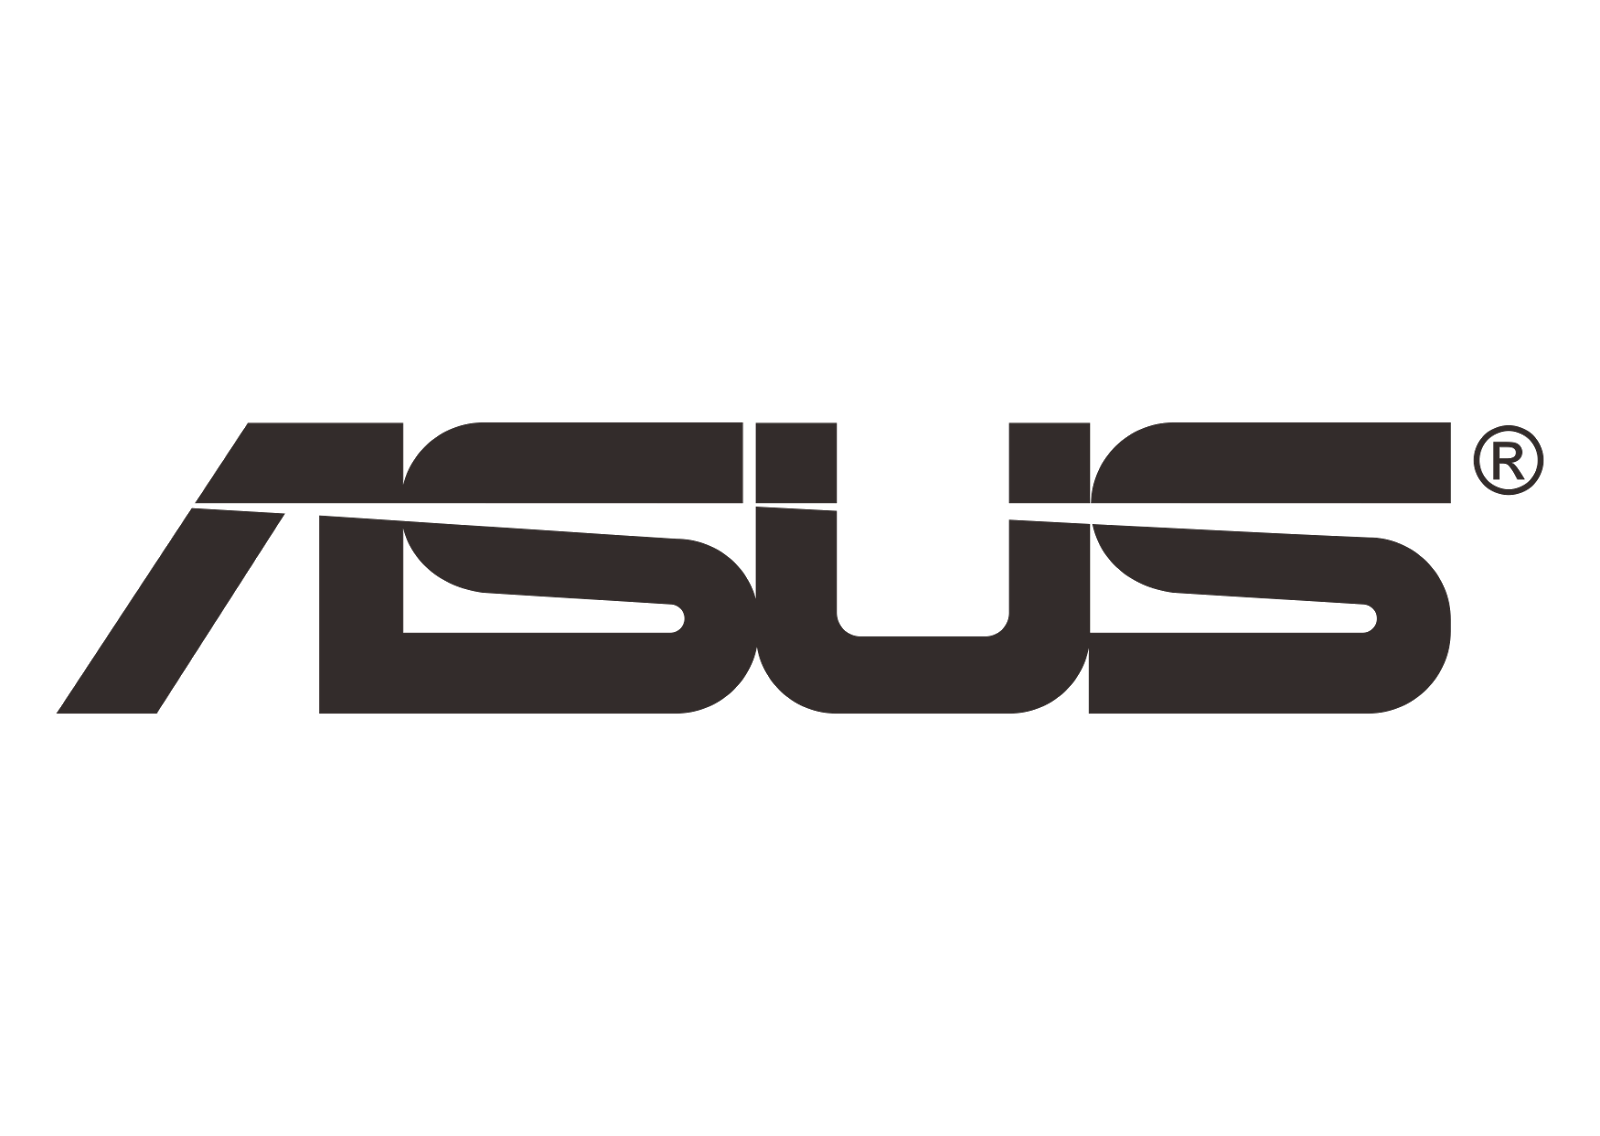 Asus Logo Vector download free